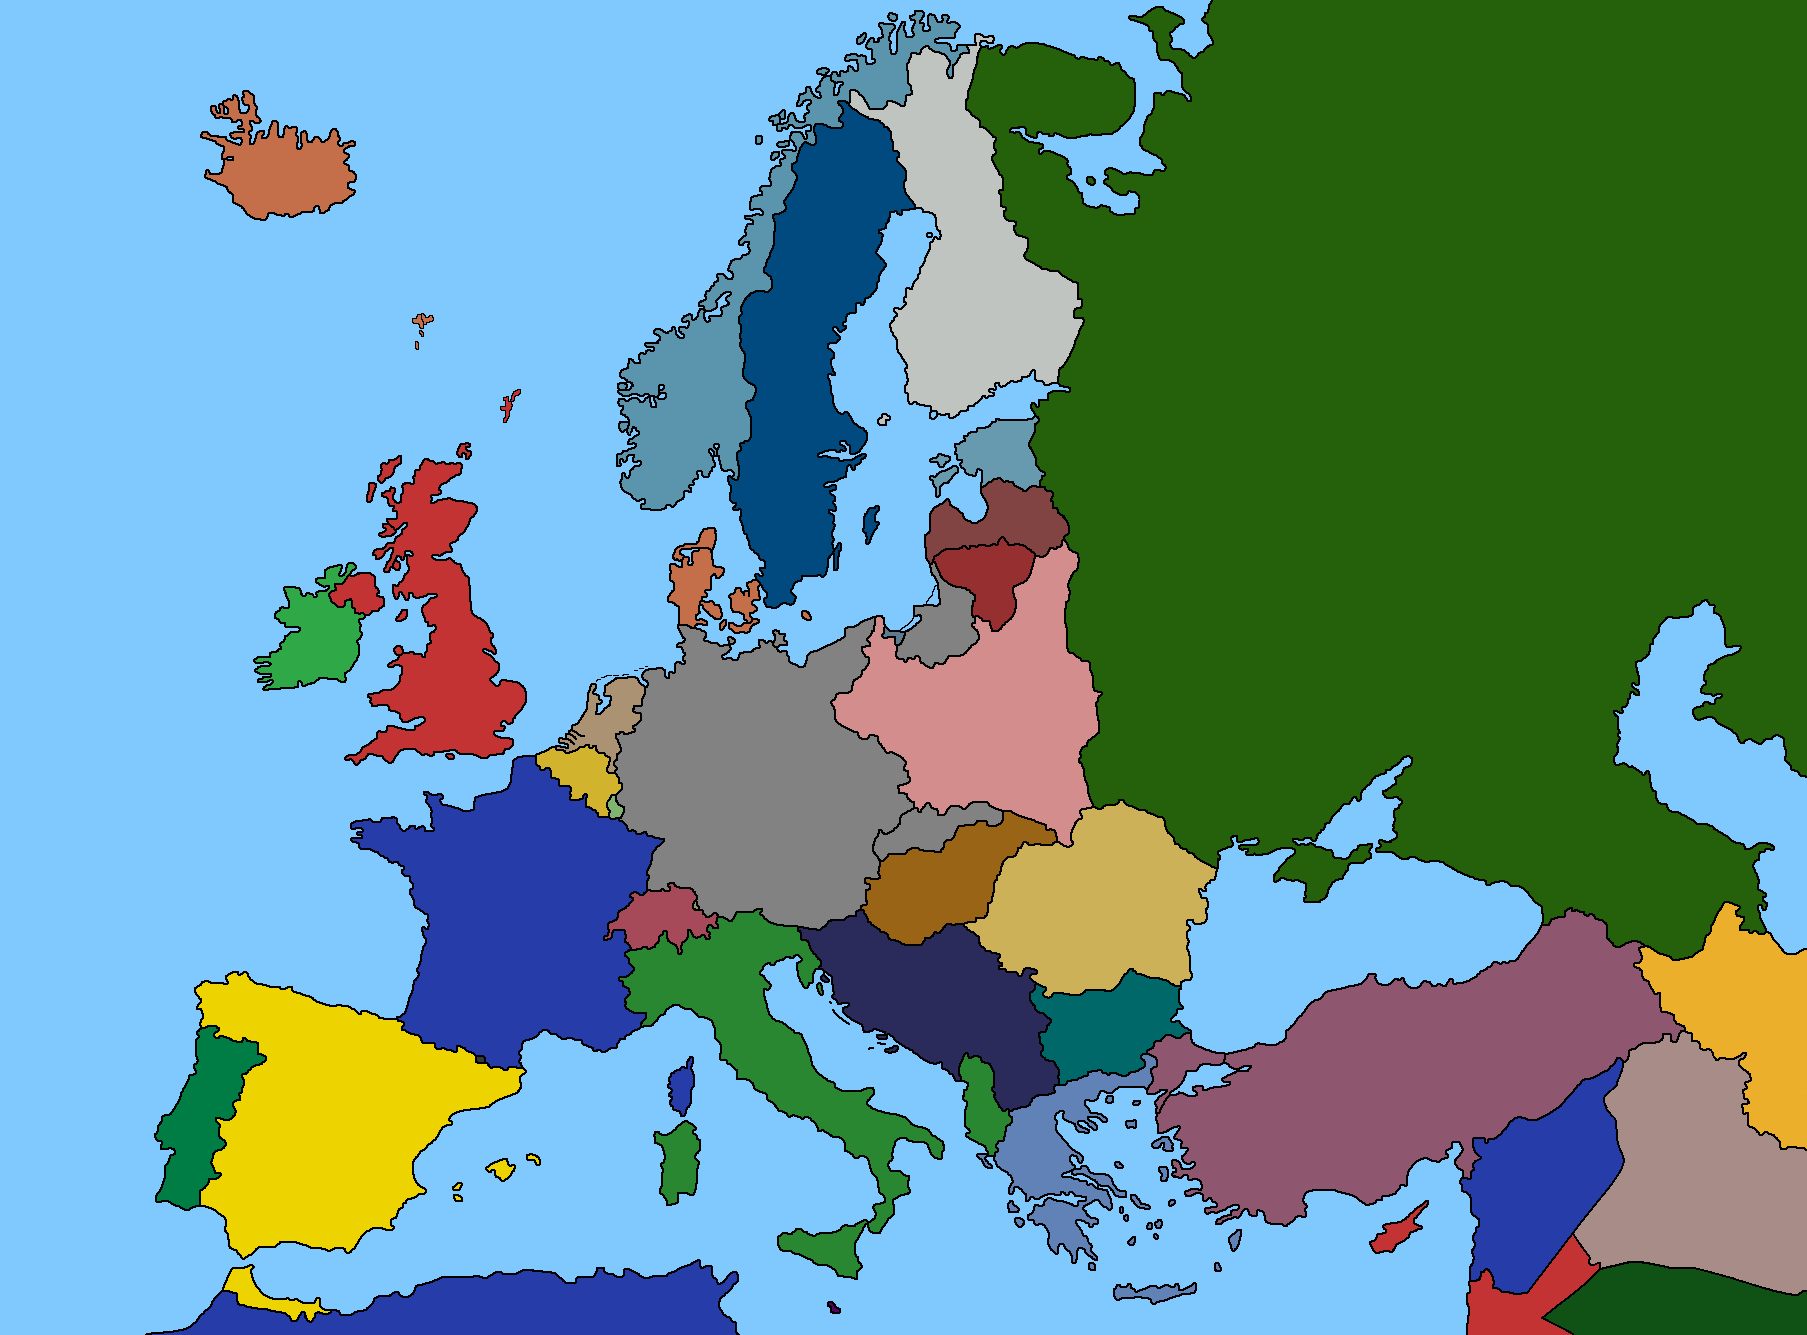 1939 Europe Map 1939 Europe Map | World Map Gray